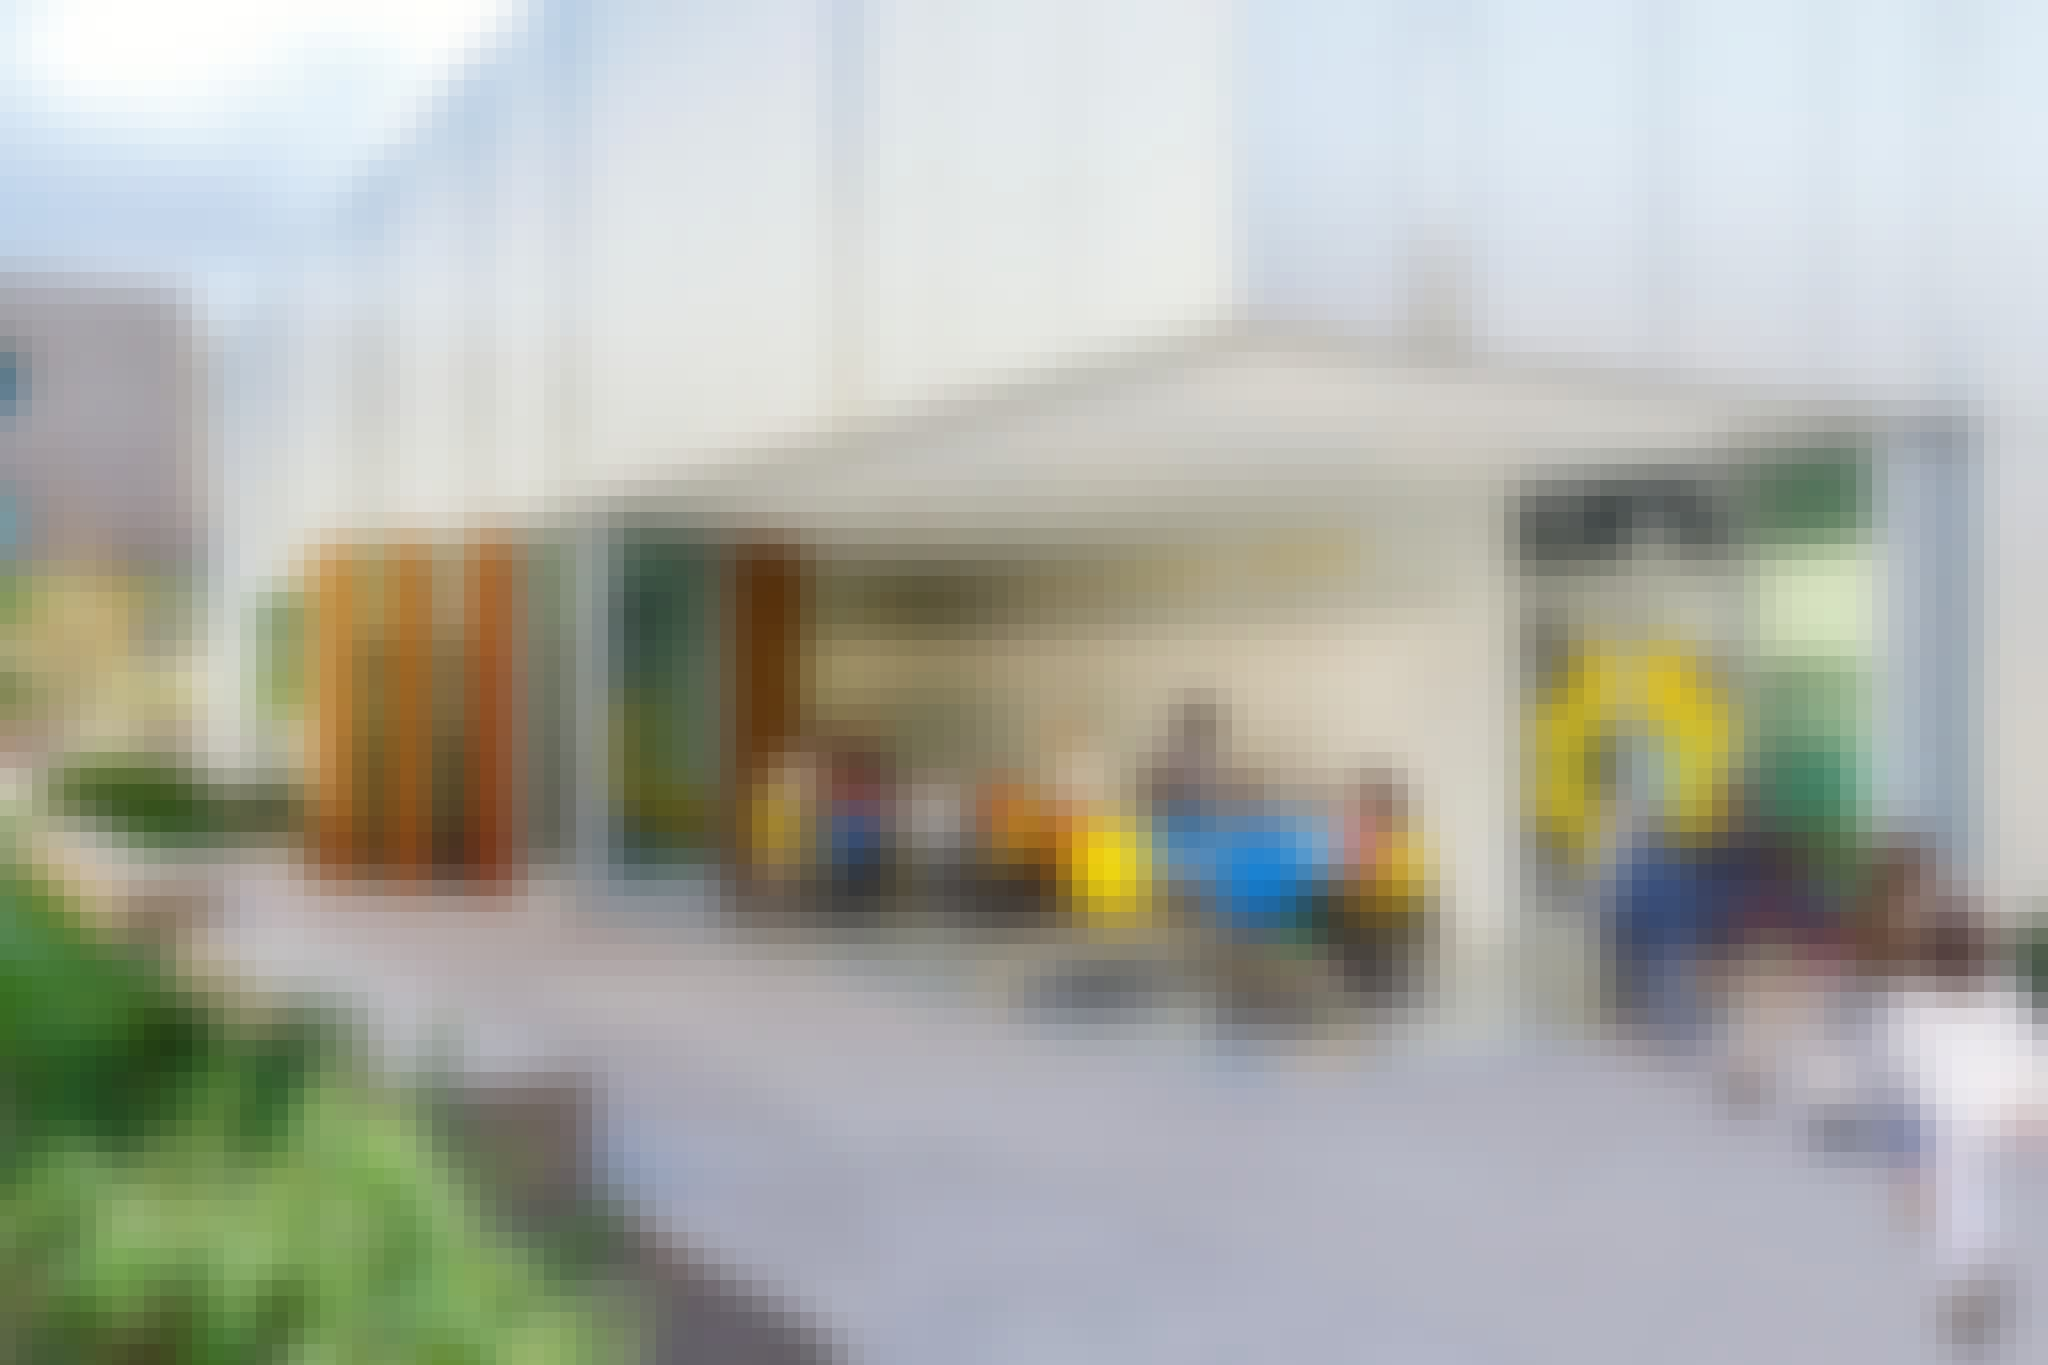 indoor/outdoor classroom designed with NanaWall sliding glass walls for 21st Century learning